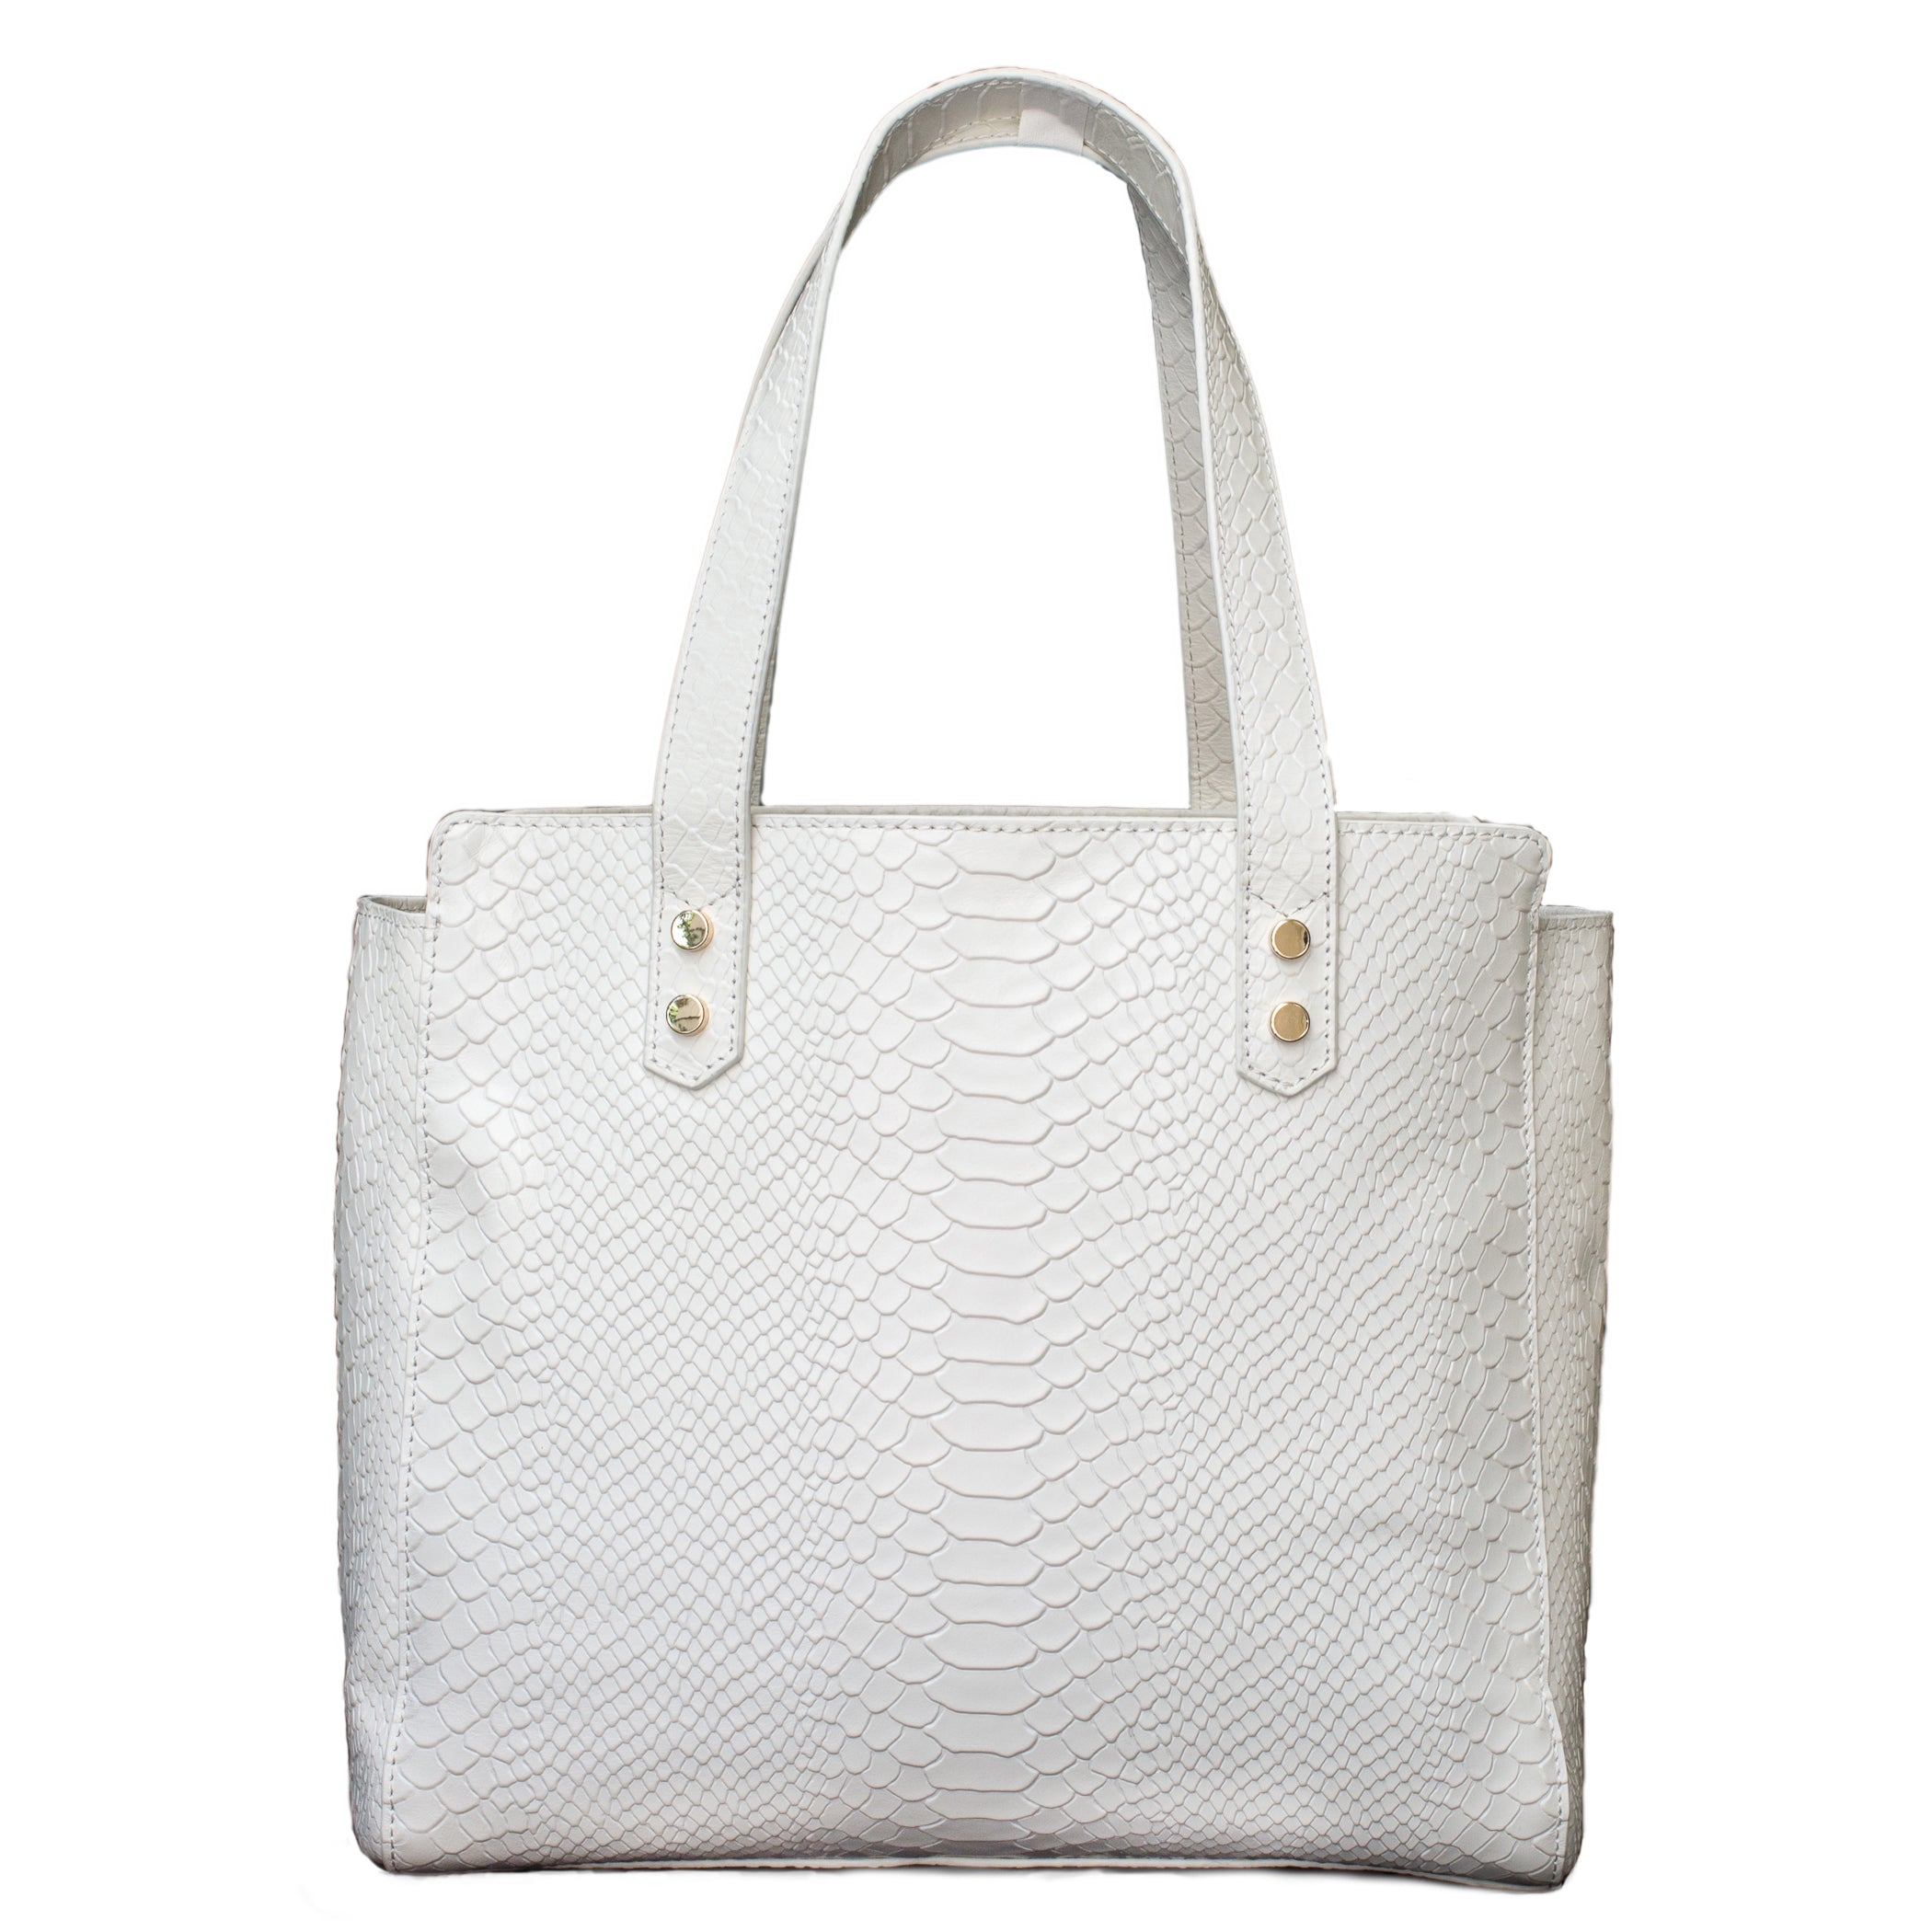 Python Embossed Leather Tote in White - Elizabeth Ackerman New York